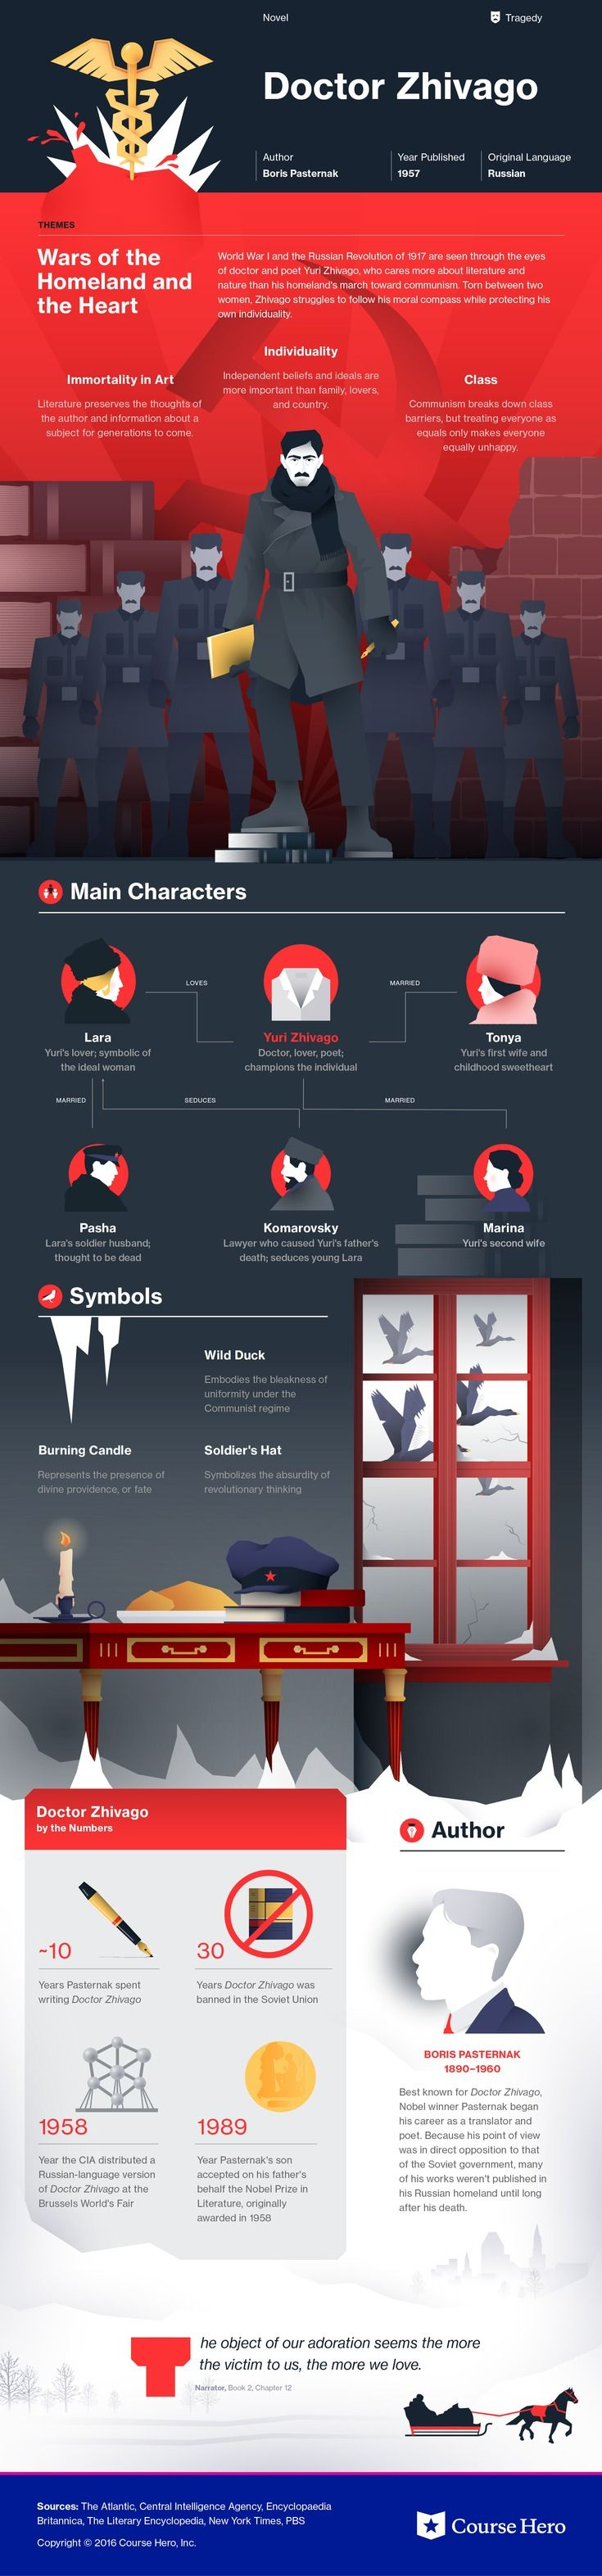 The color red scarlet letter project publish with glogster - This Coursehero Infographic On Dr Zhivago Is Both Visually Stunning And Informative